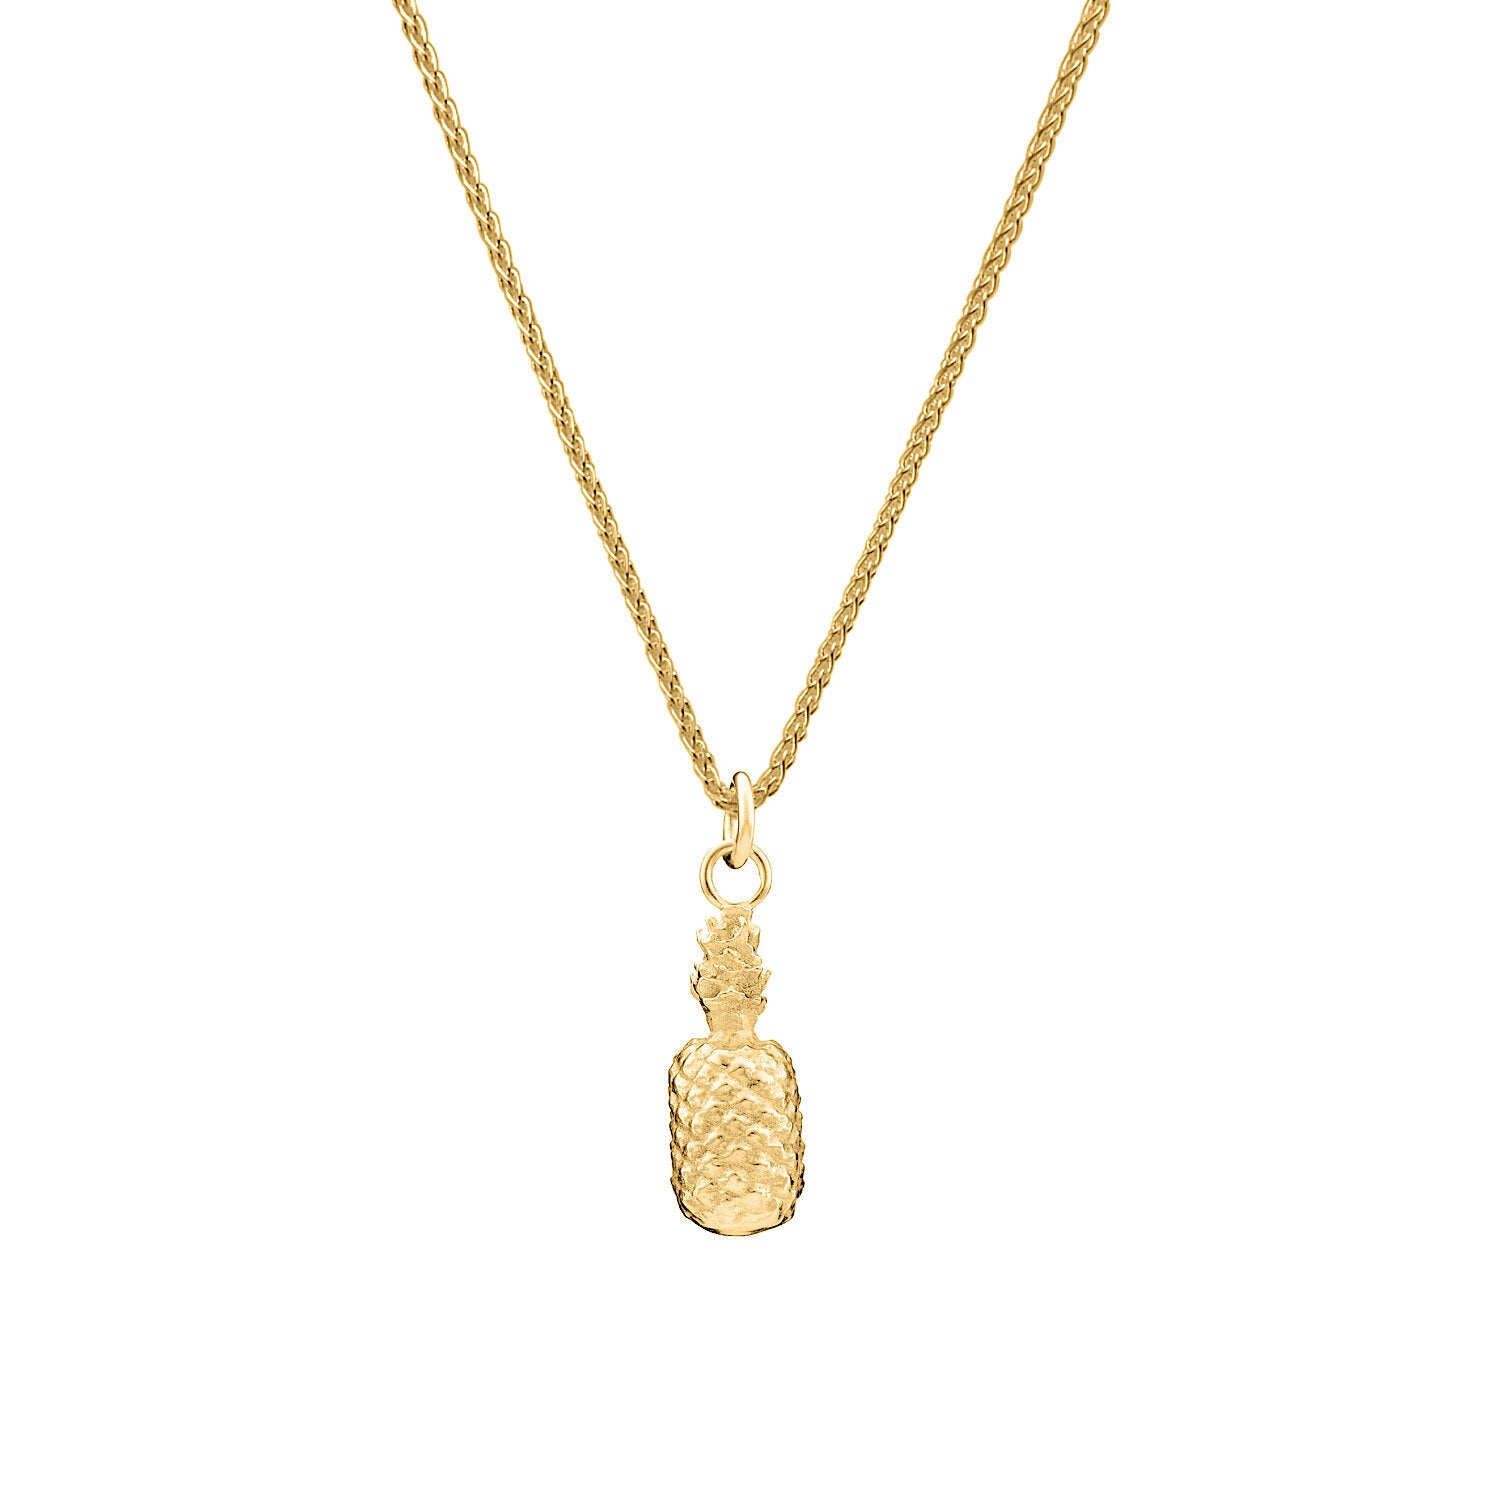 Gold Pineapple Charm Necklace